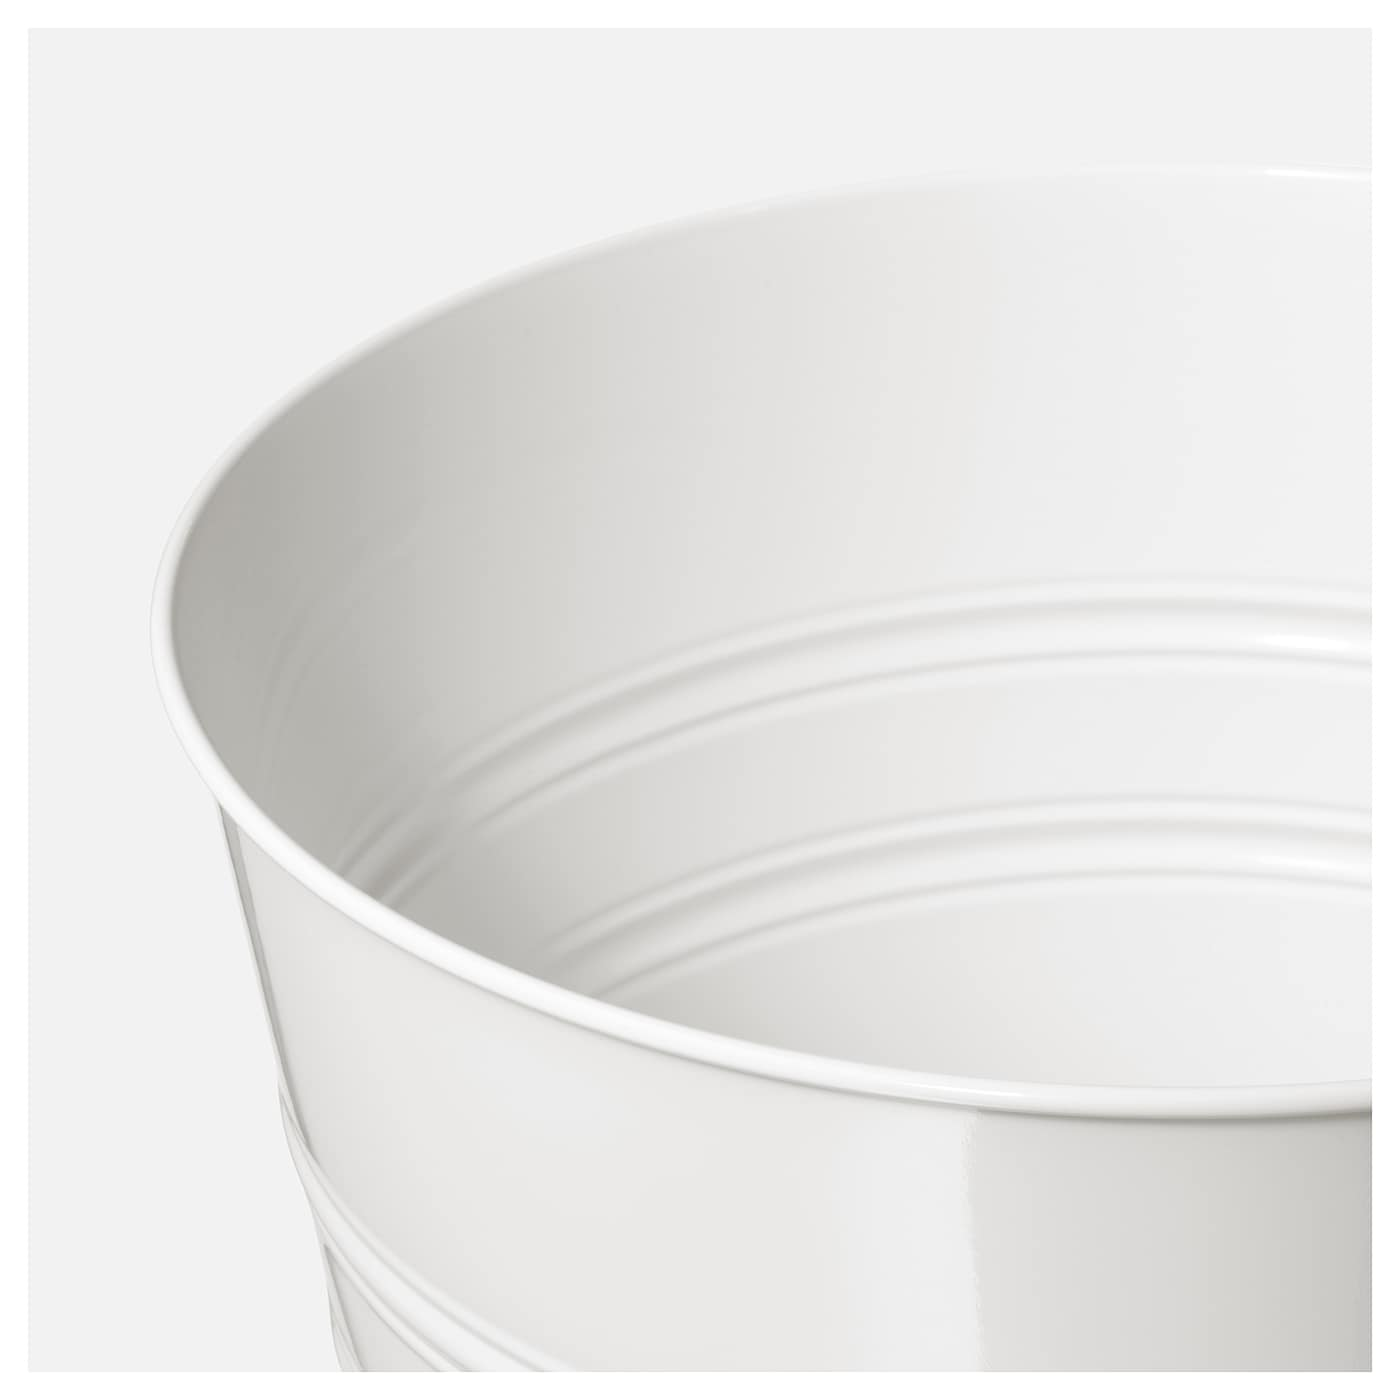 Socker cache pot int rieur ext rieur blanc 24 cm ikea for Cache pot exterieur